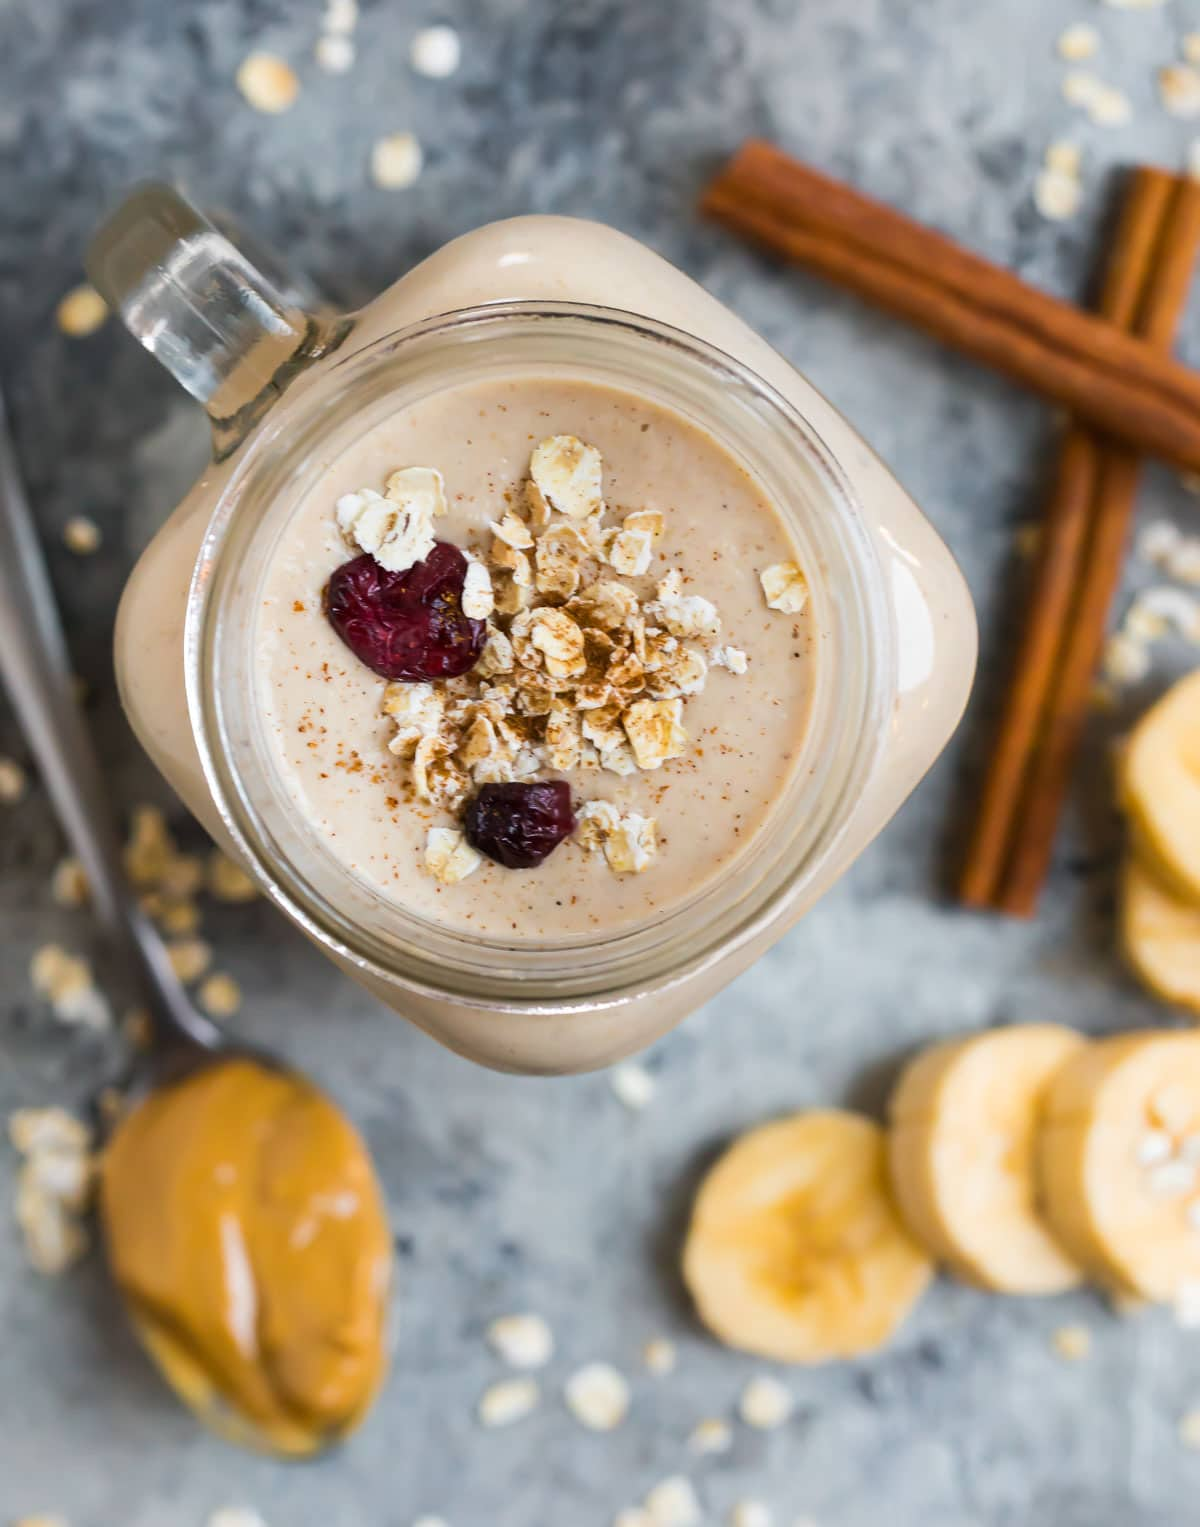 An oatmeal smoothie next to a spoon with peanut butter, bananas, and cinnamon sticks